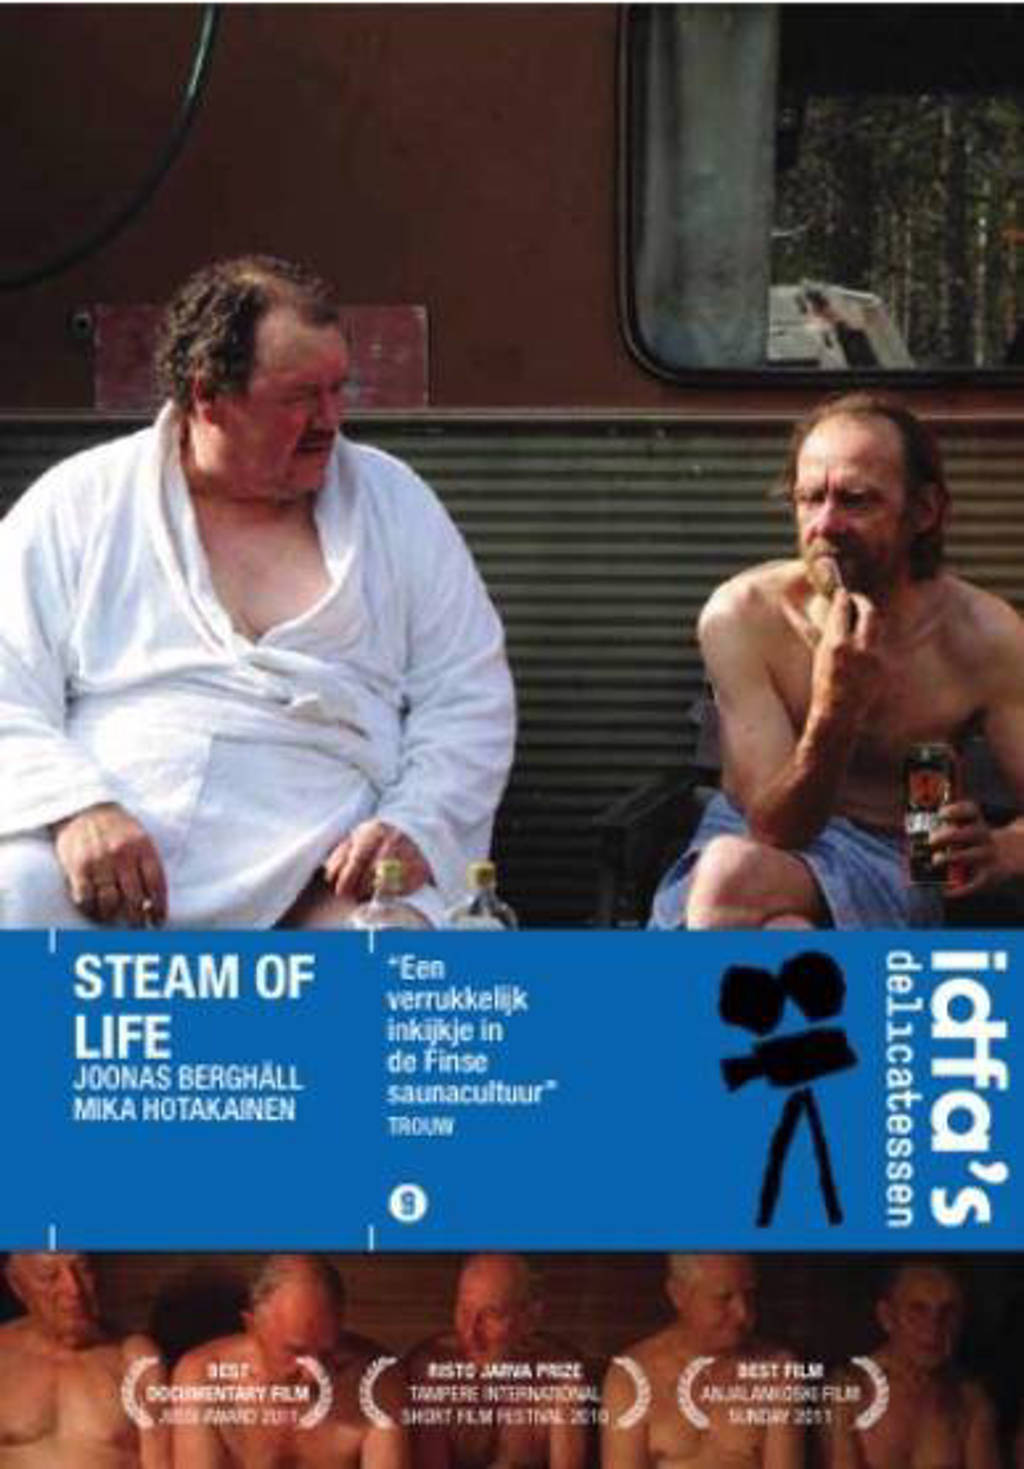 Steam of life (DVD)